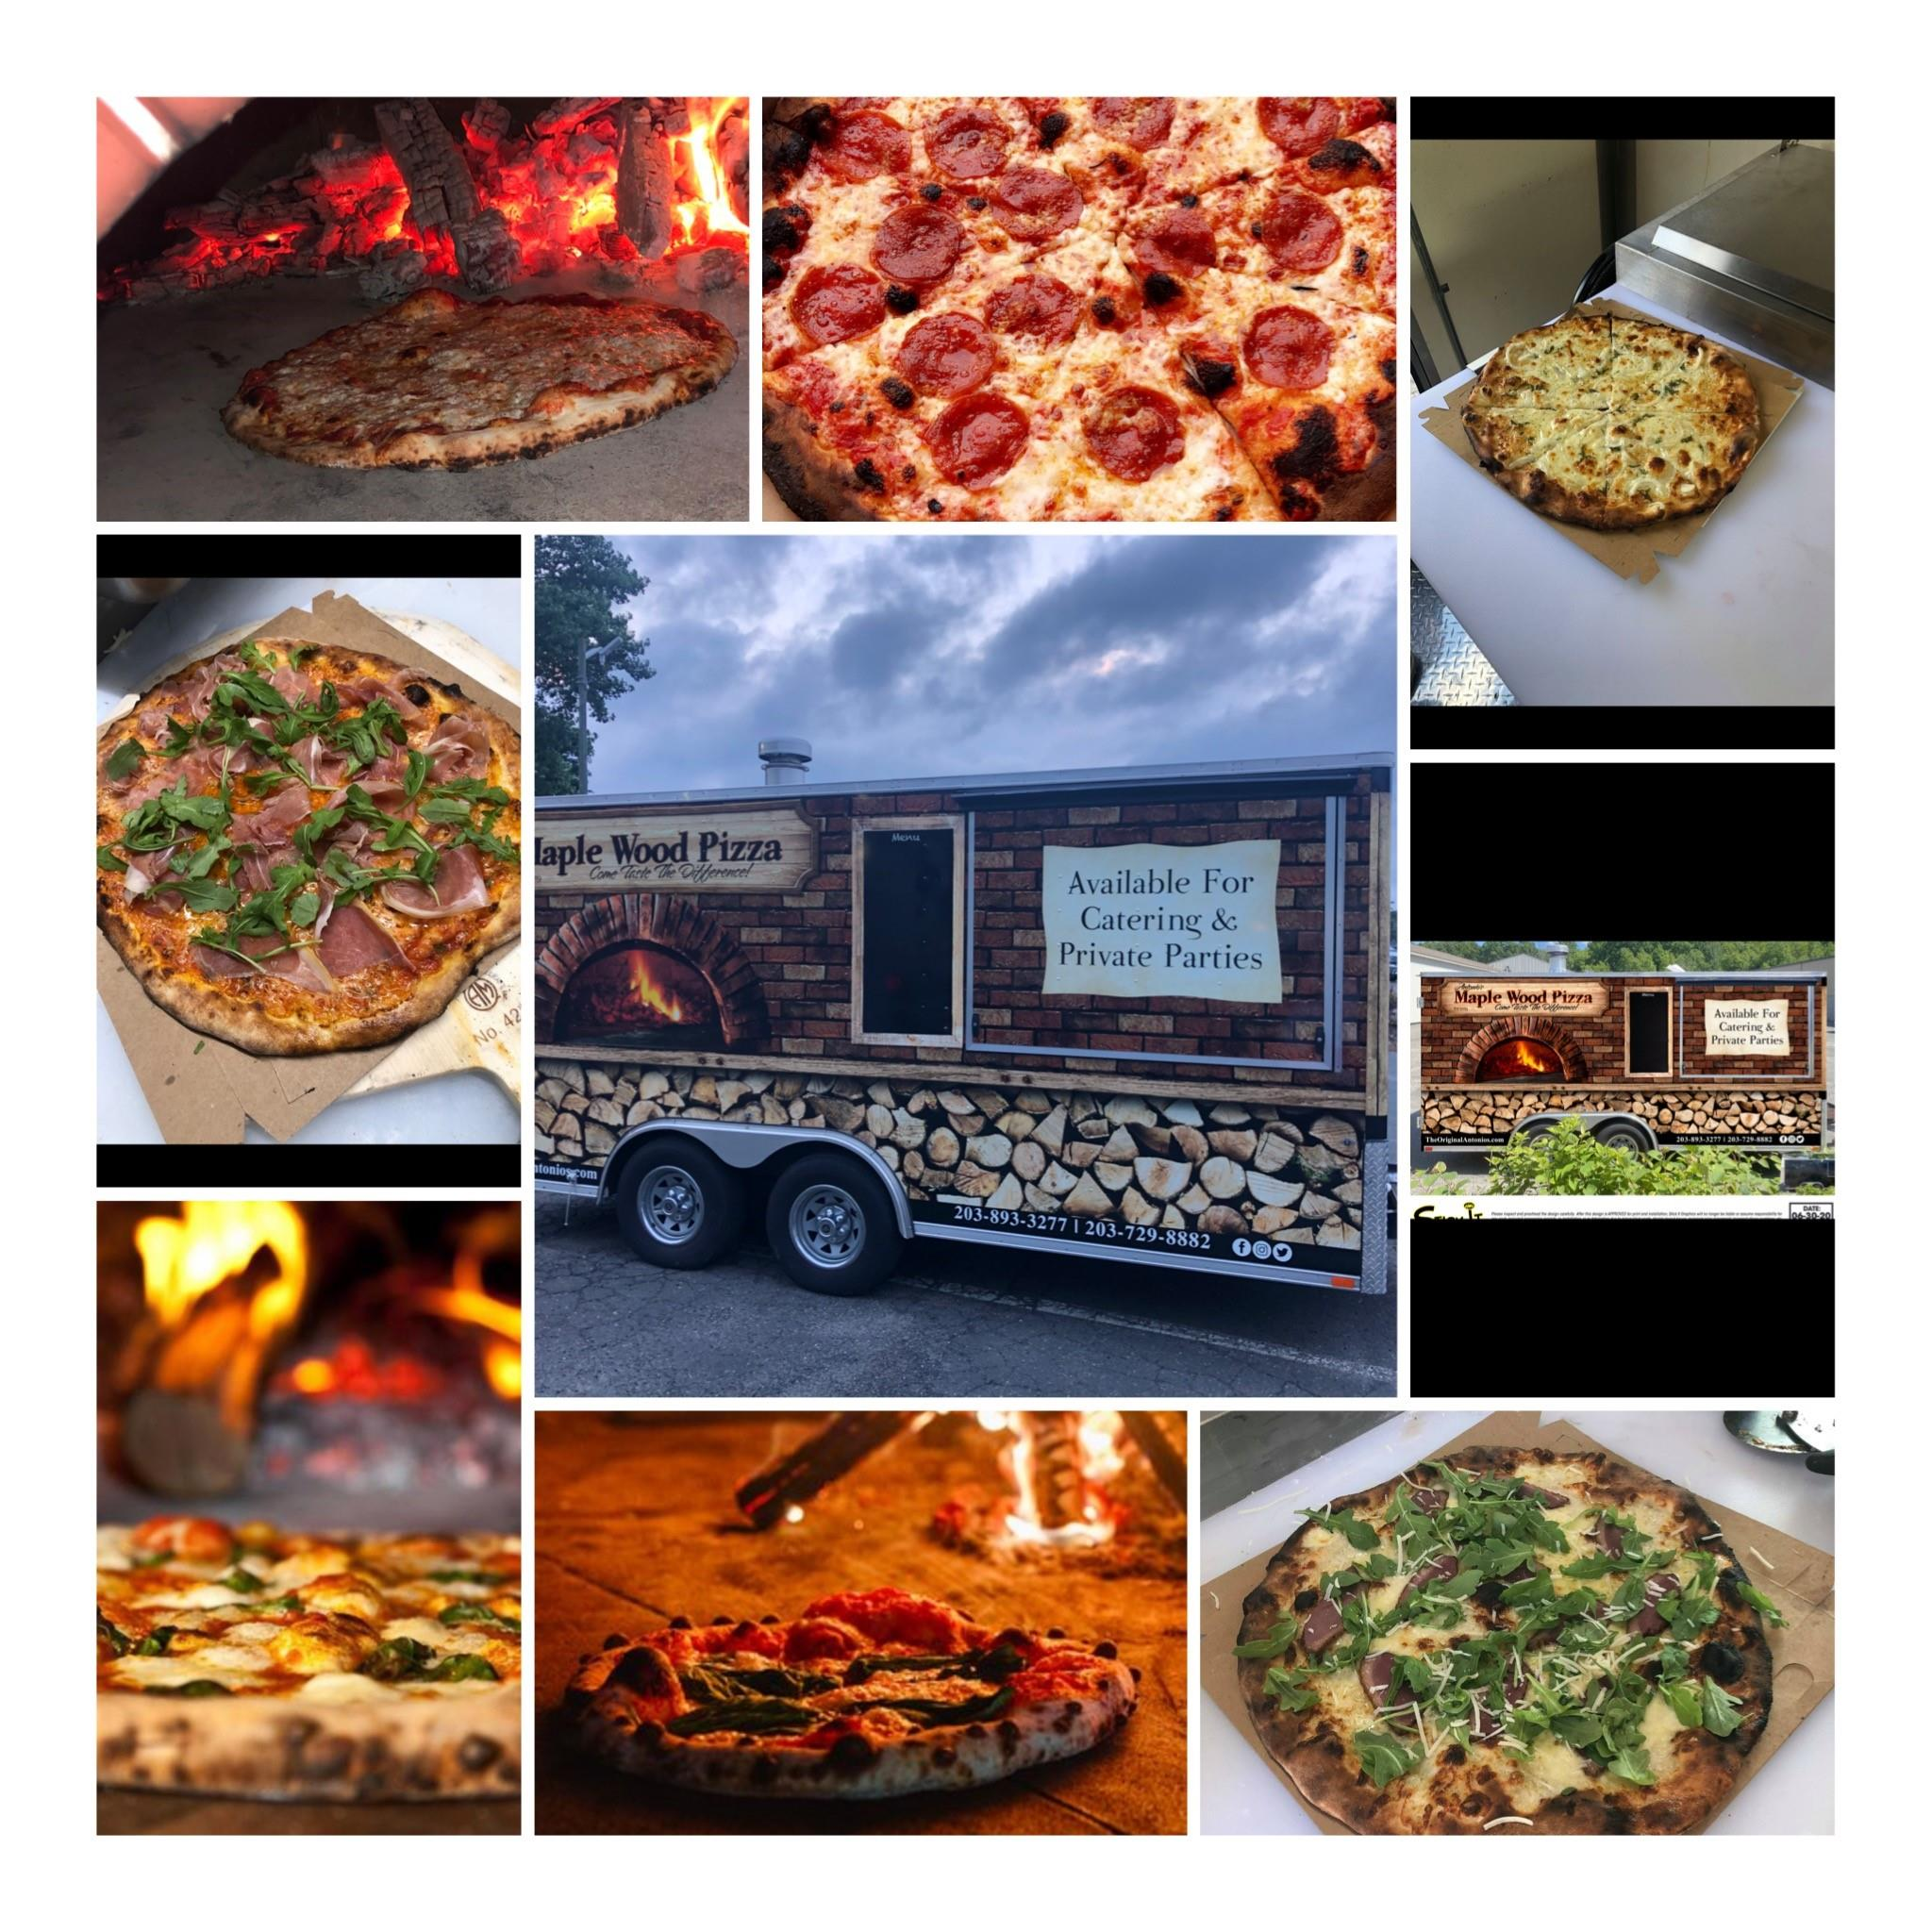 collage of several different photos of pizza, with the pizza truck at the center